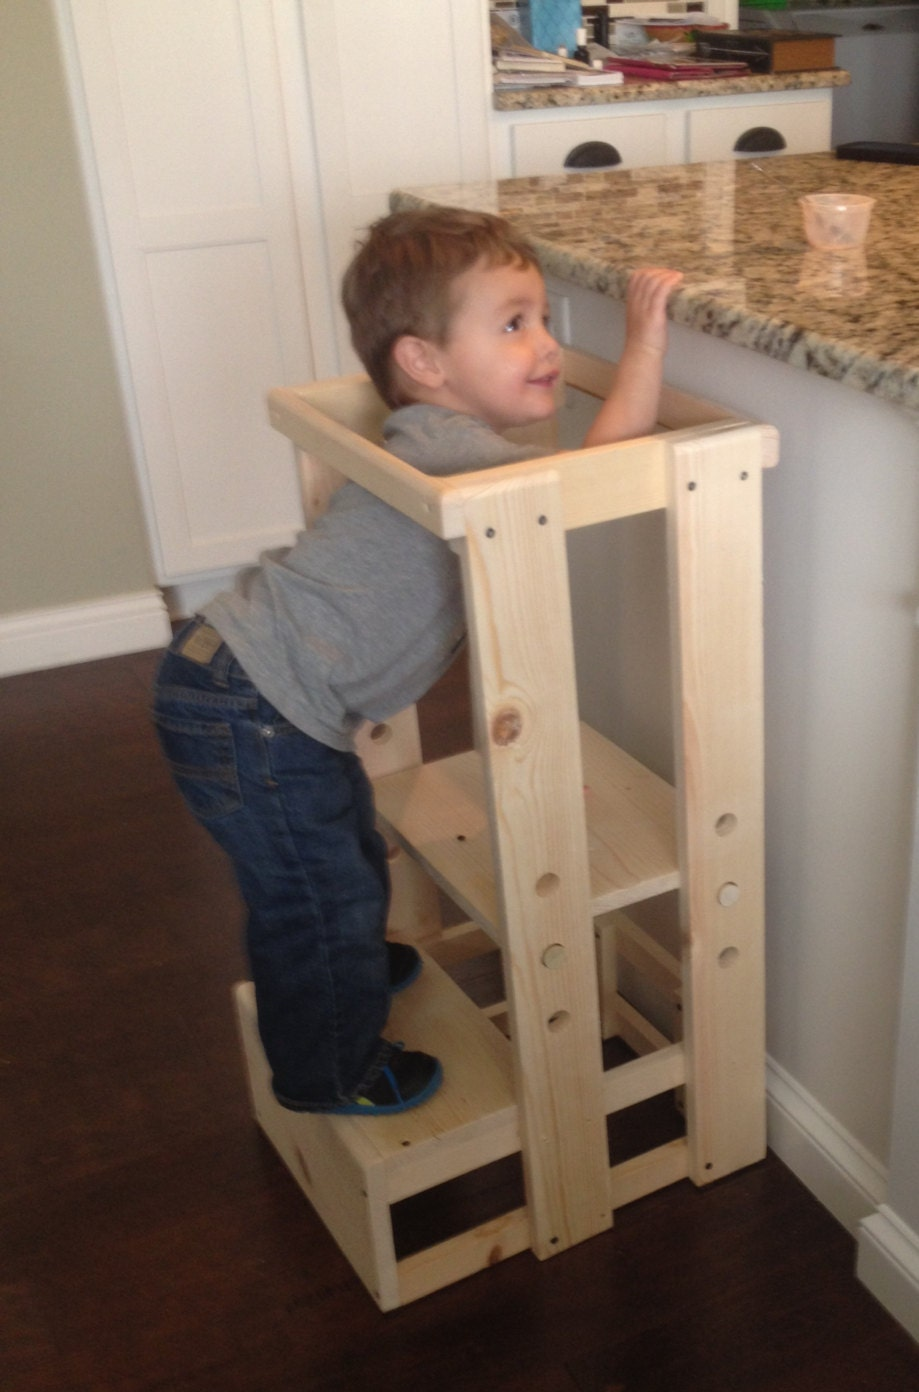 Child Kitchen Helper Step Stool Toddler Stool Tot Tower